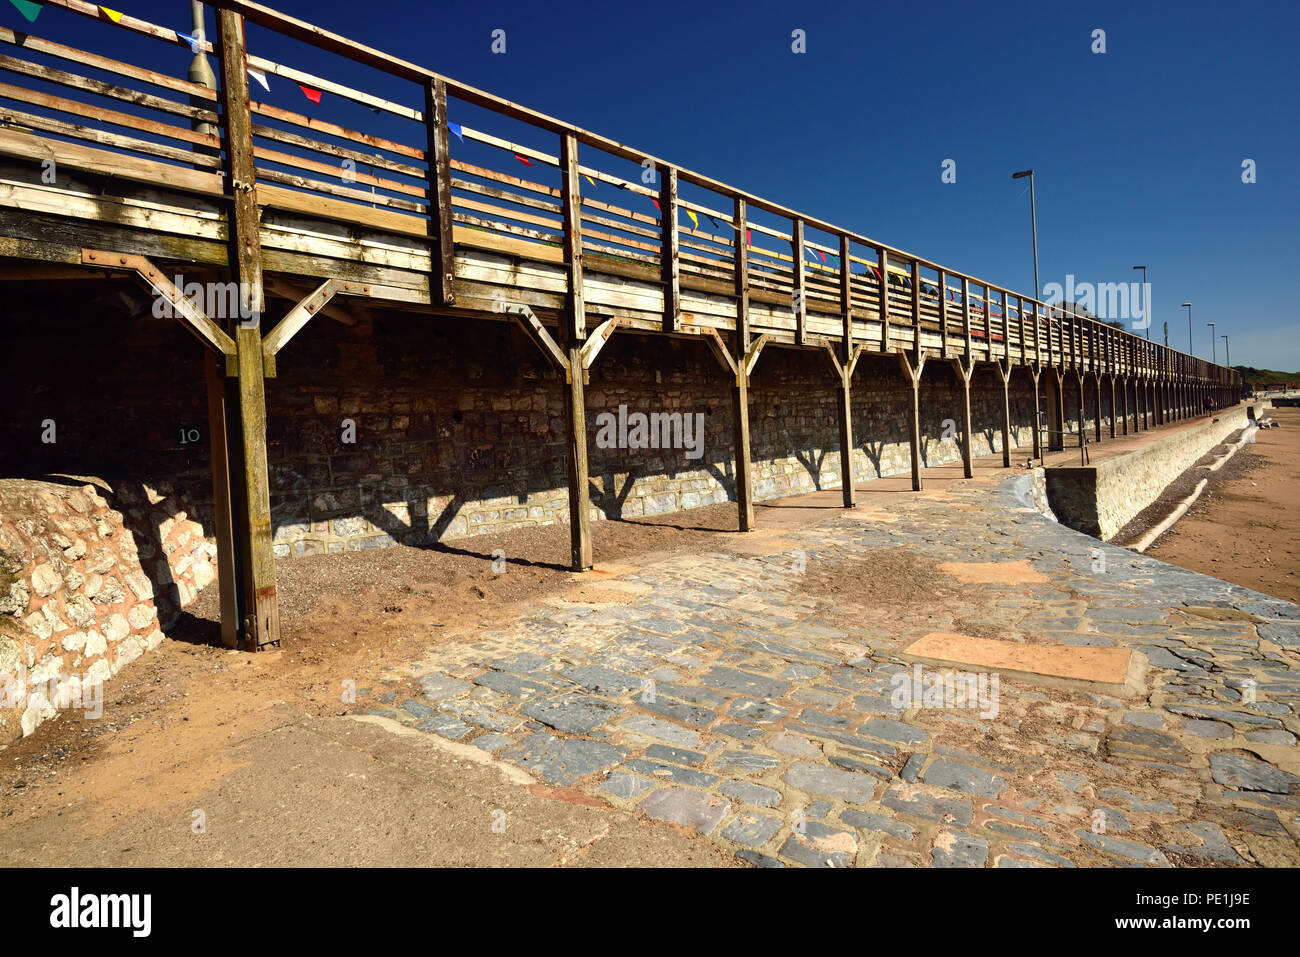 The elevated down platform at Dawlish railway station, seen from the beach below. - Stock Image